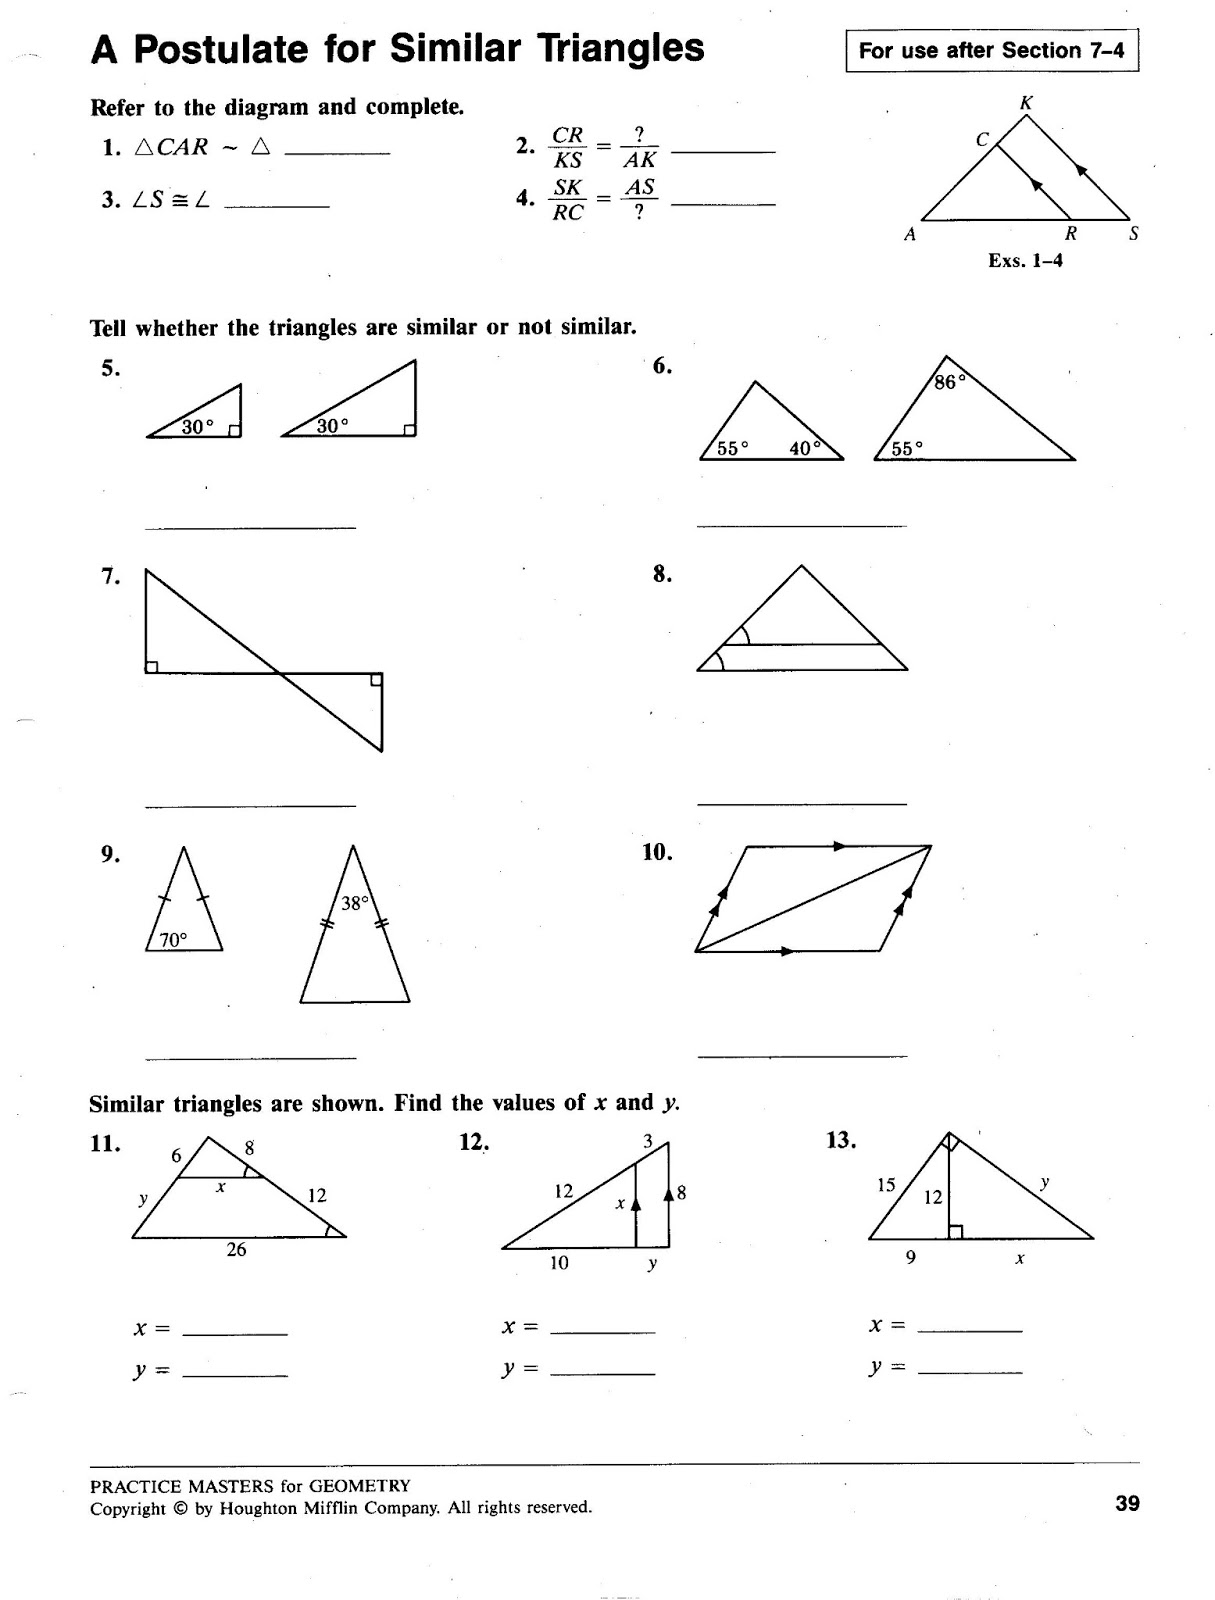 triangle similarity worksheet Termolak – Geometry Worksheet Congruent Triangles Answers